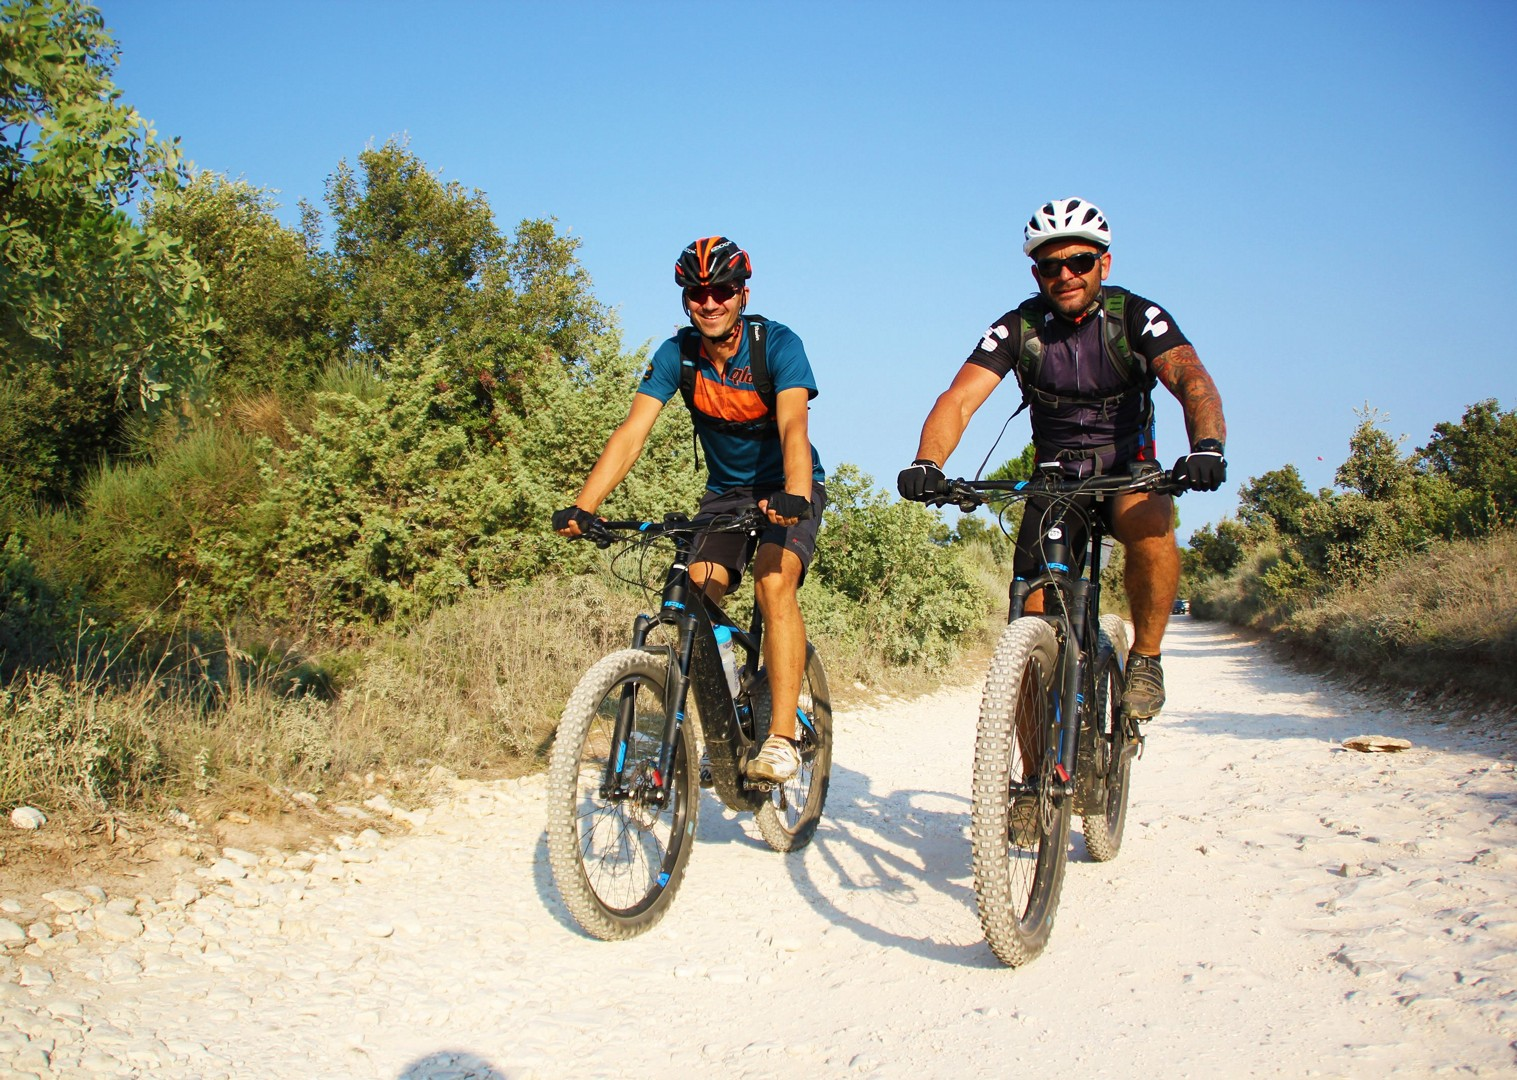 parenzana-guided-mountain-biking-holiday-croatia-terra-magica.JPG - NEW! Croatia - Terra Magica - Mountain Biking